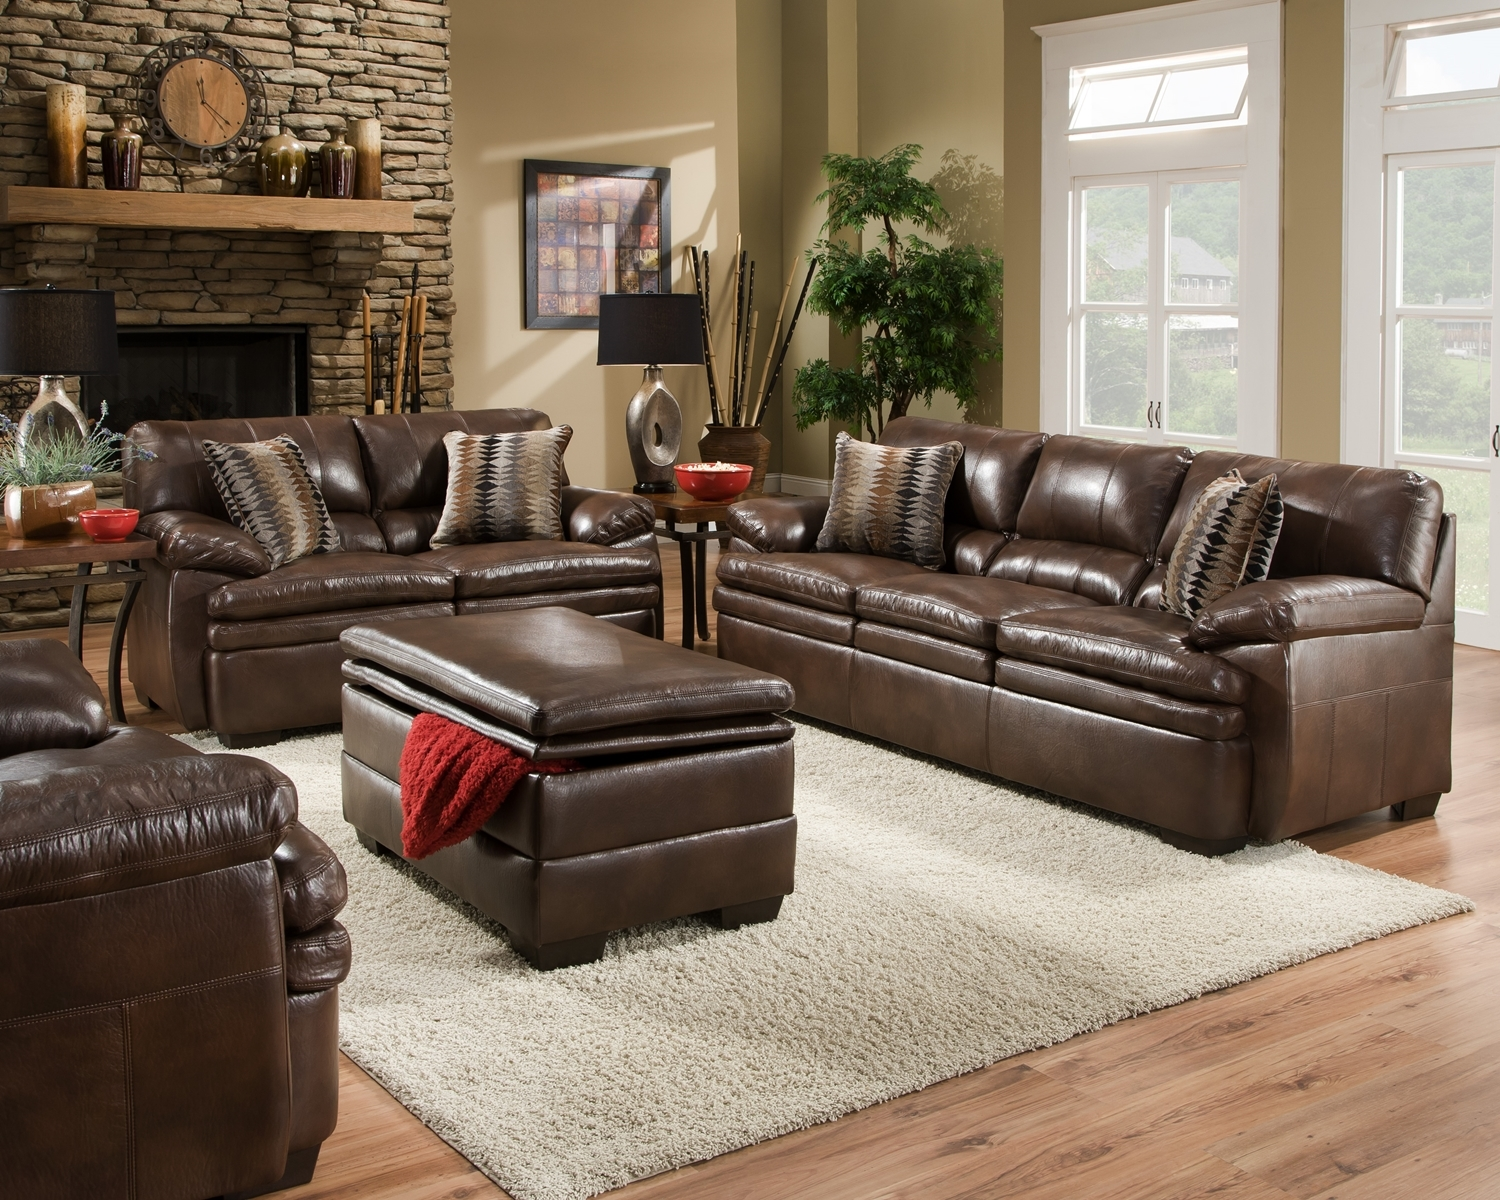 Brown bonded leather sofa set casual living room furniture w accent pillows ebay Living rooms with leather sofas